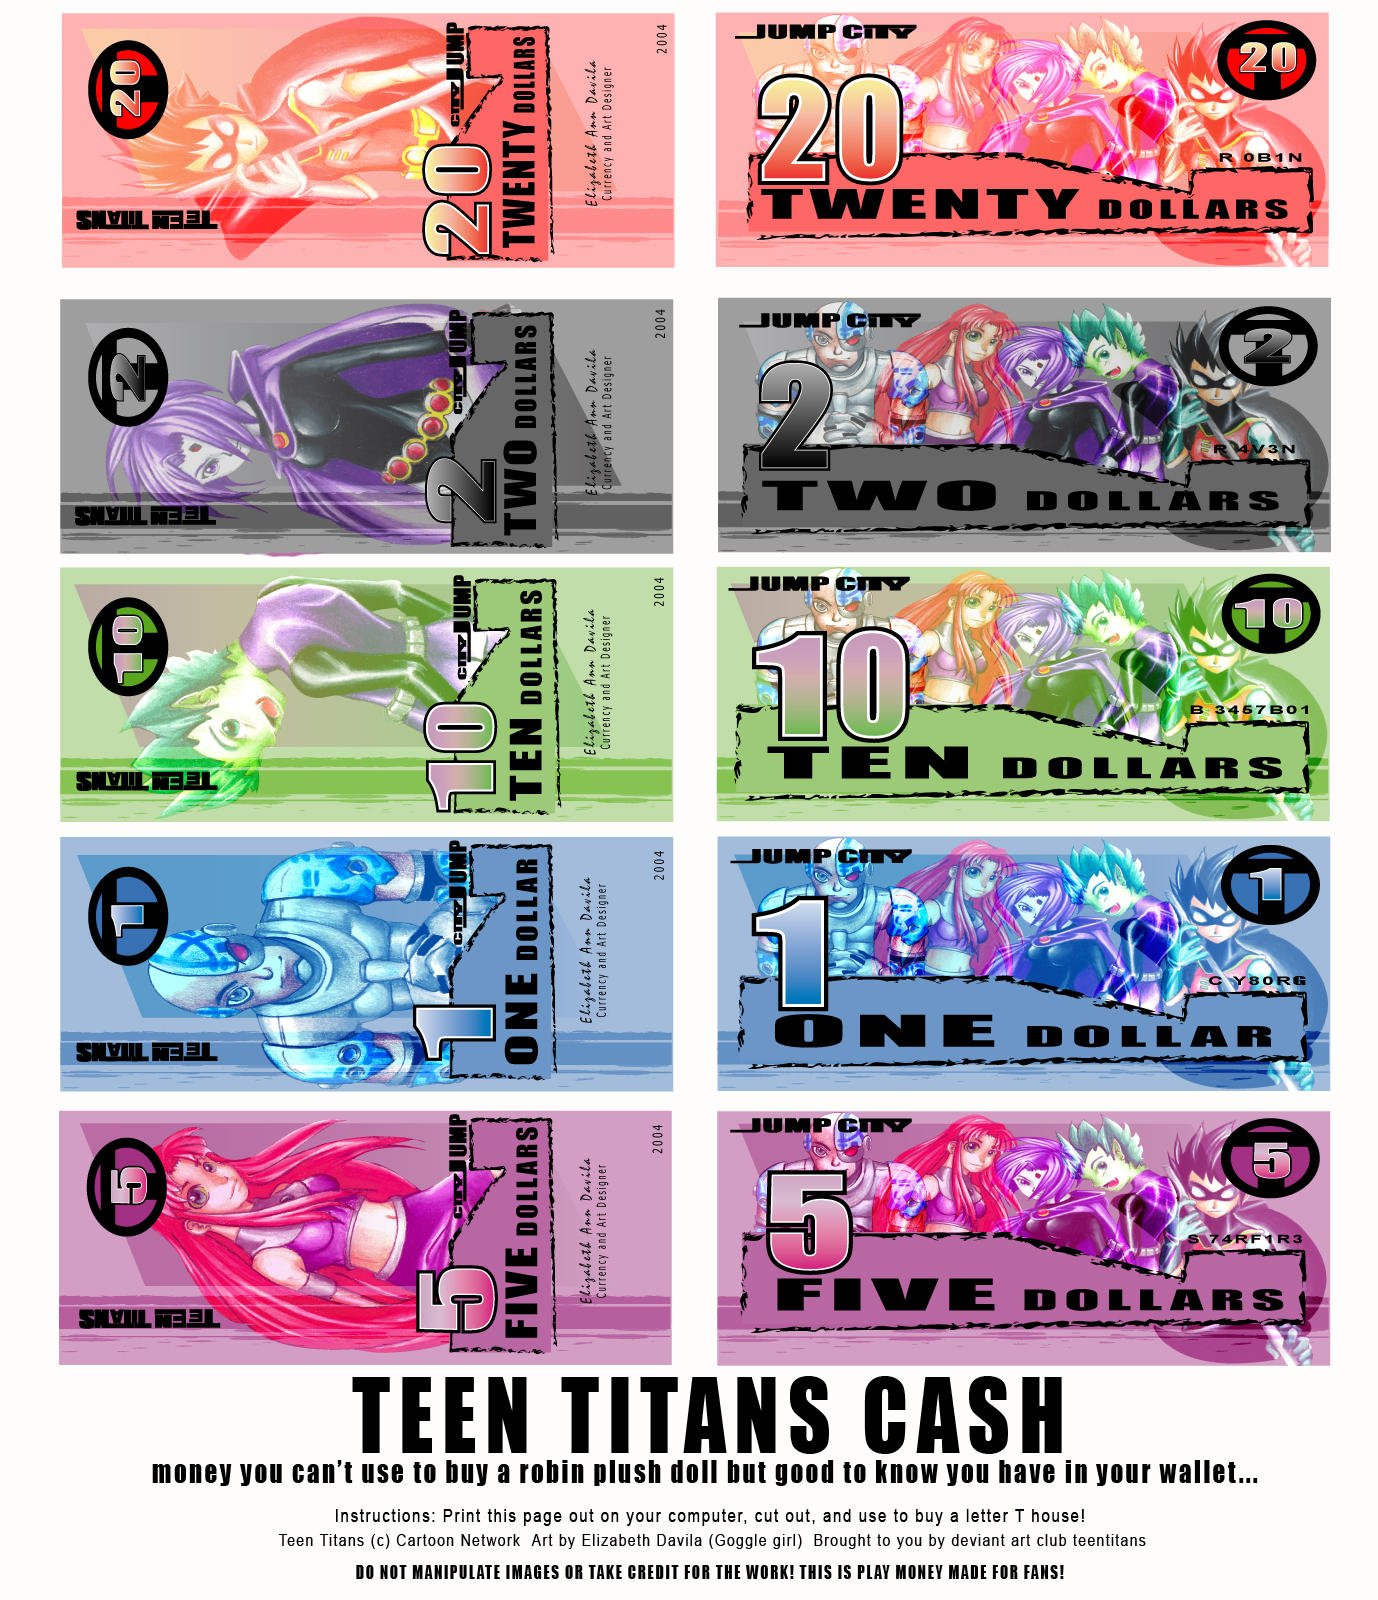 Teen Titans CASH by teentitans